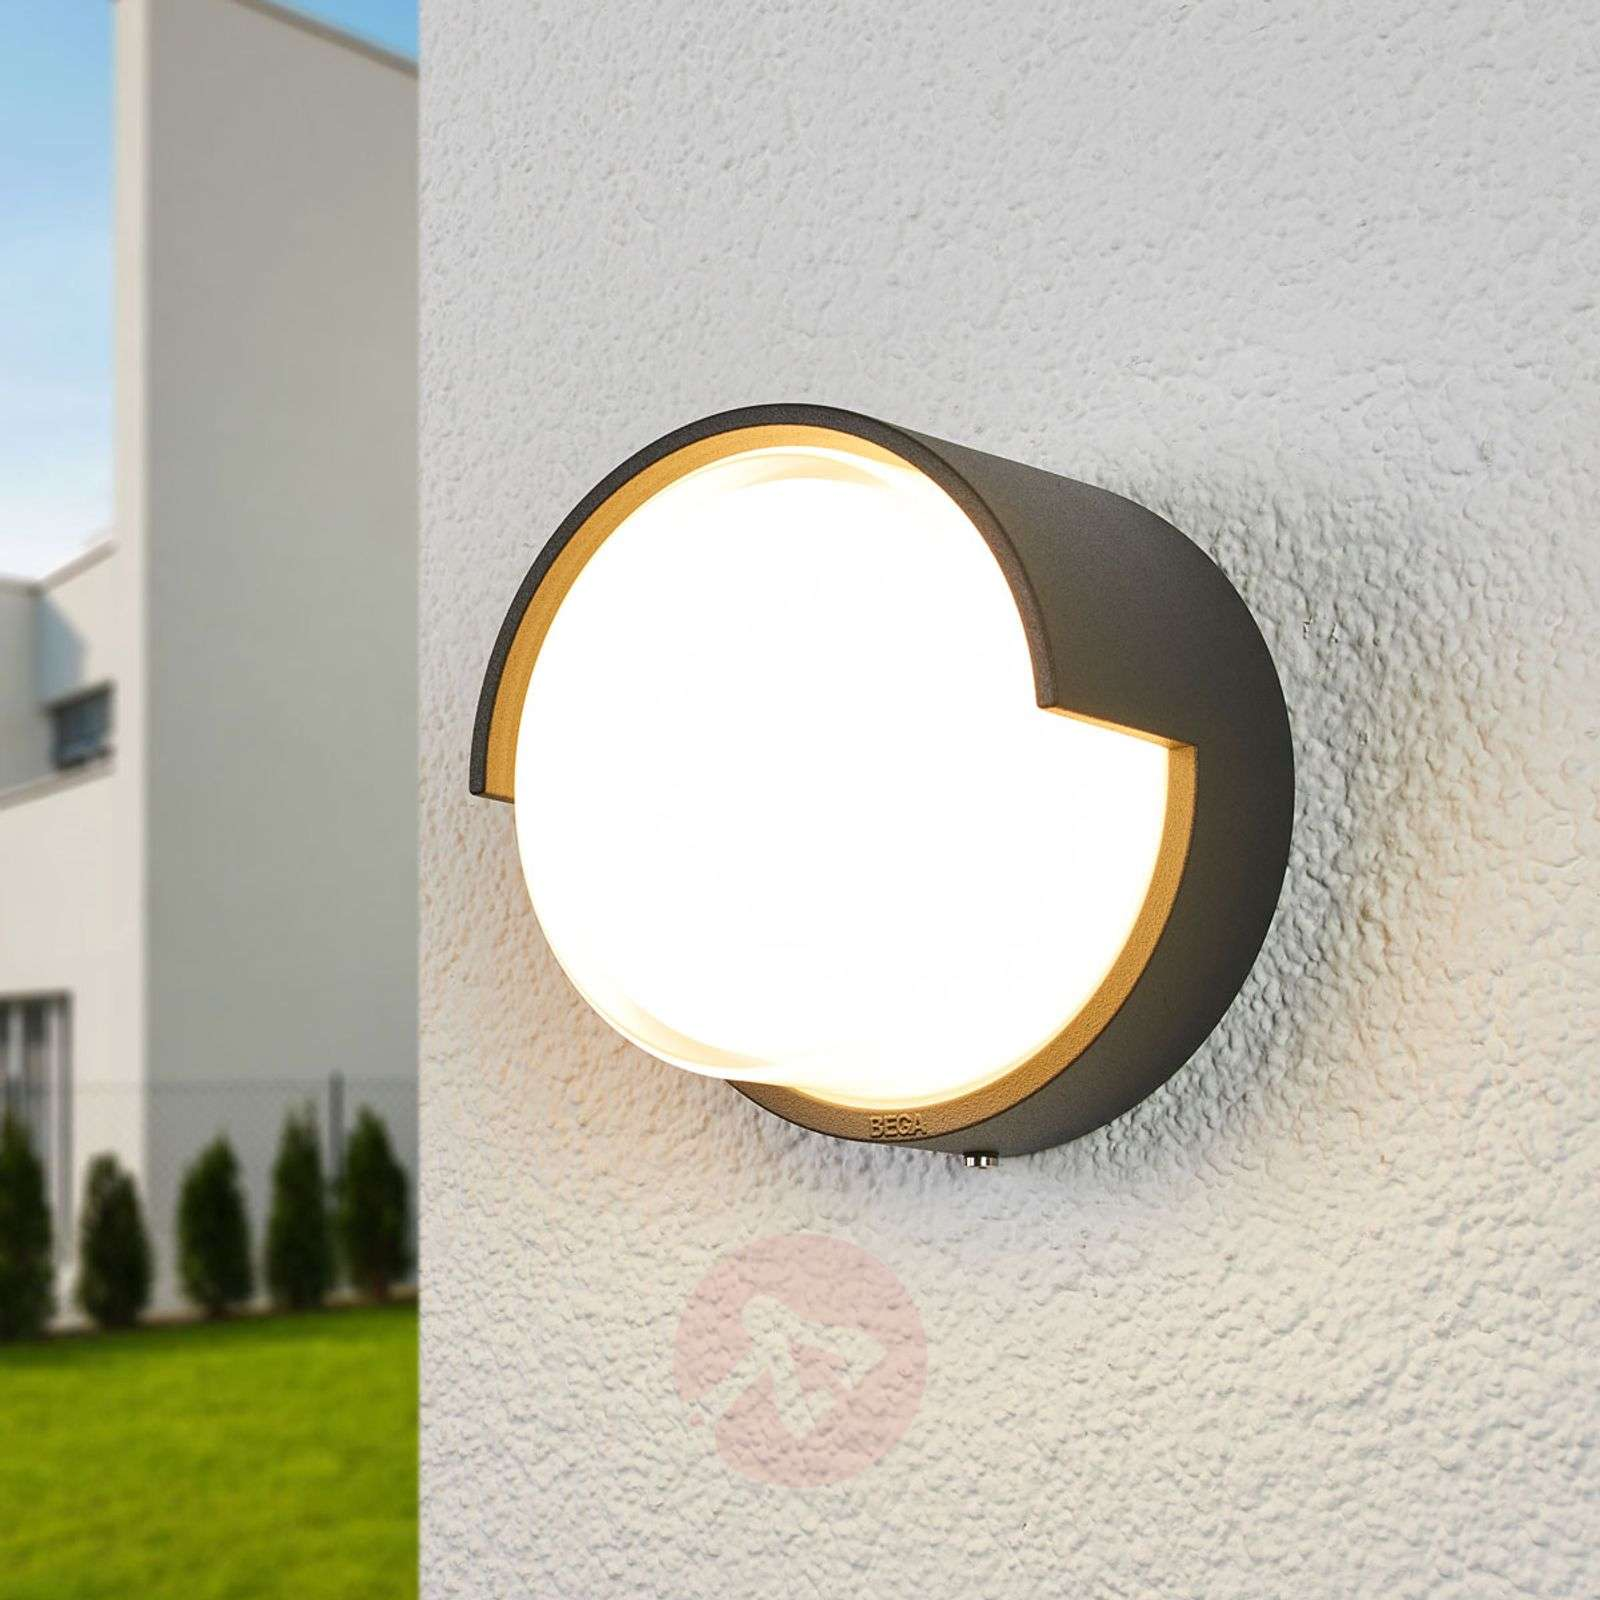 Acquista applique da esterni led helge robusta ip lampade